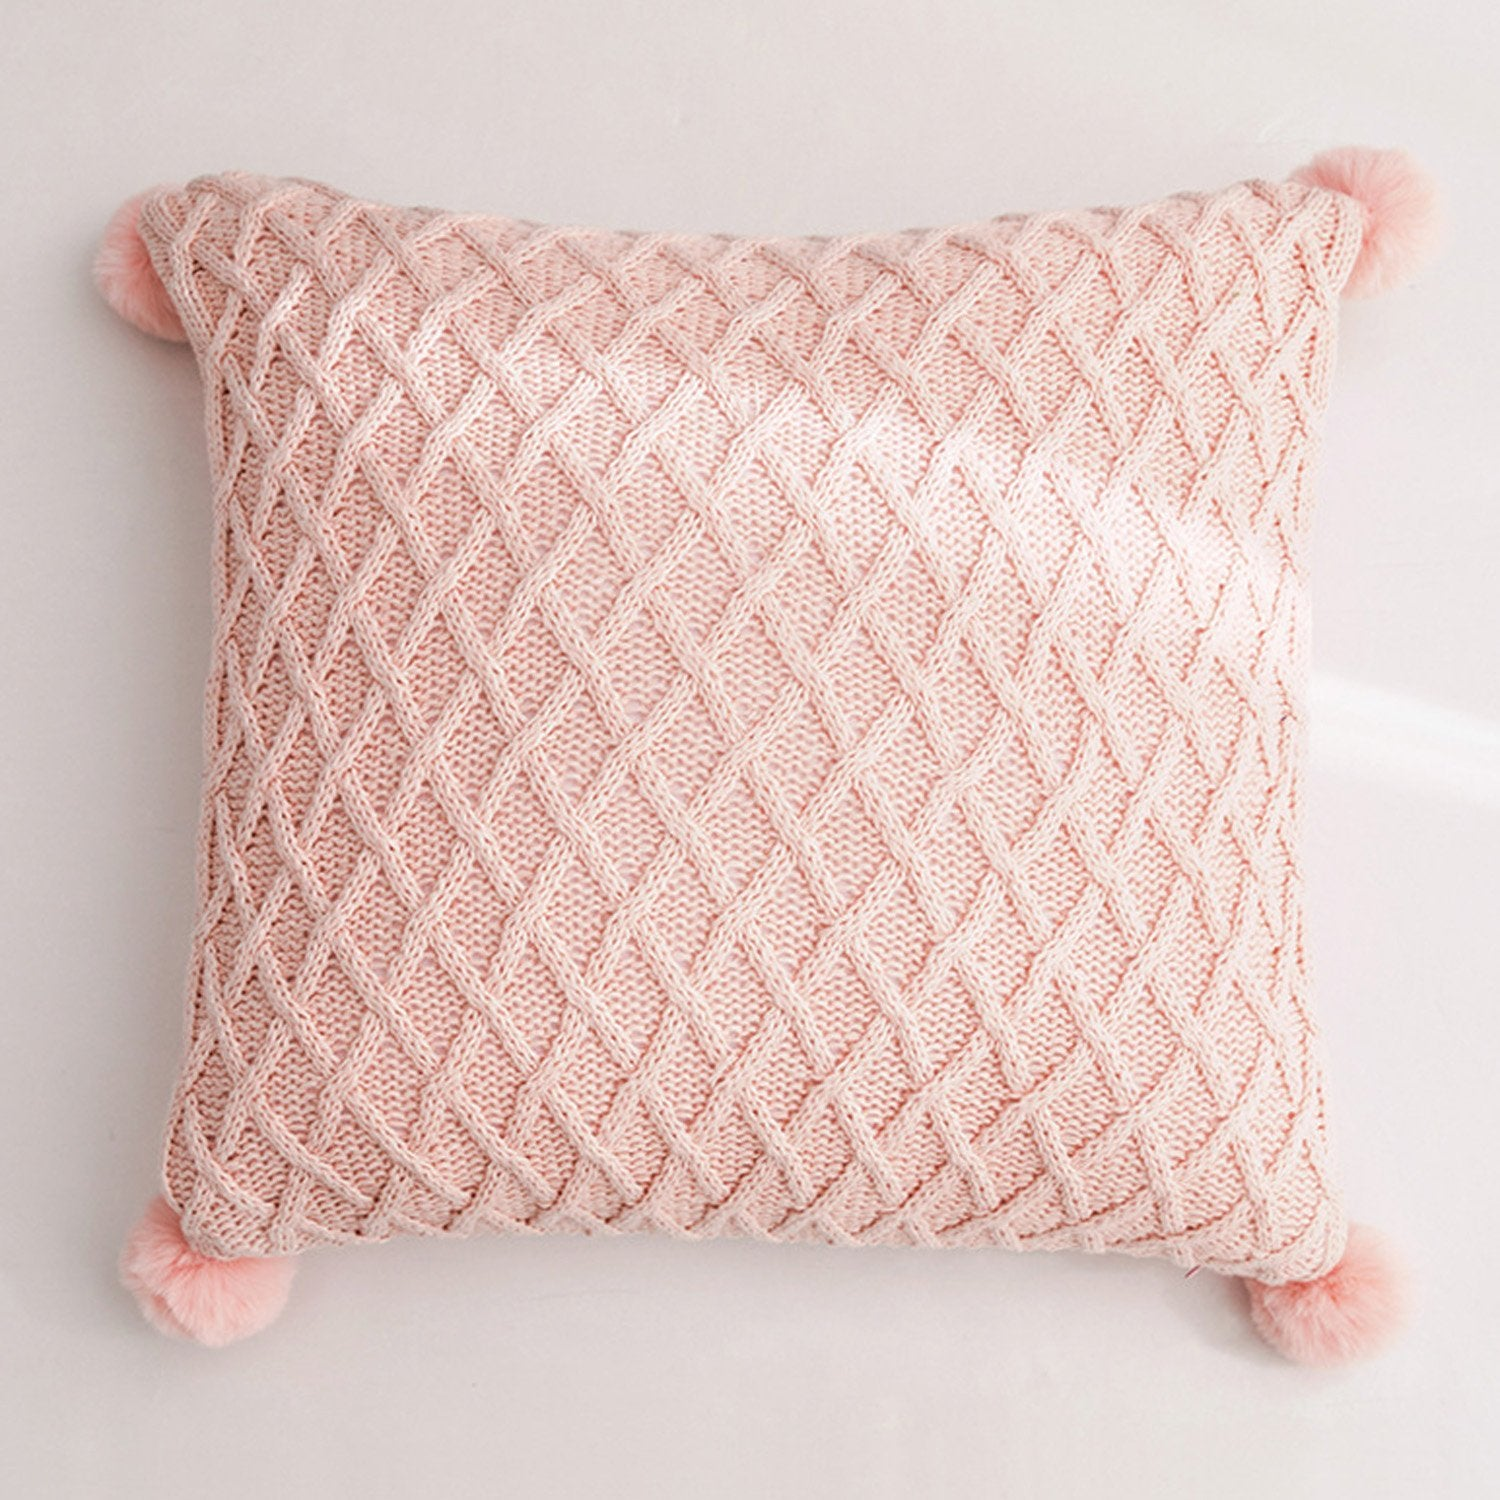 Lattice Pom Pom Cushions - Violet and Eve